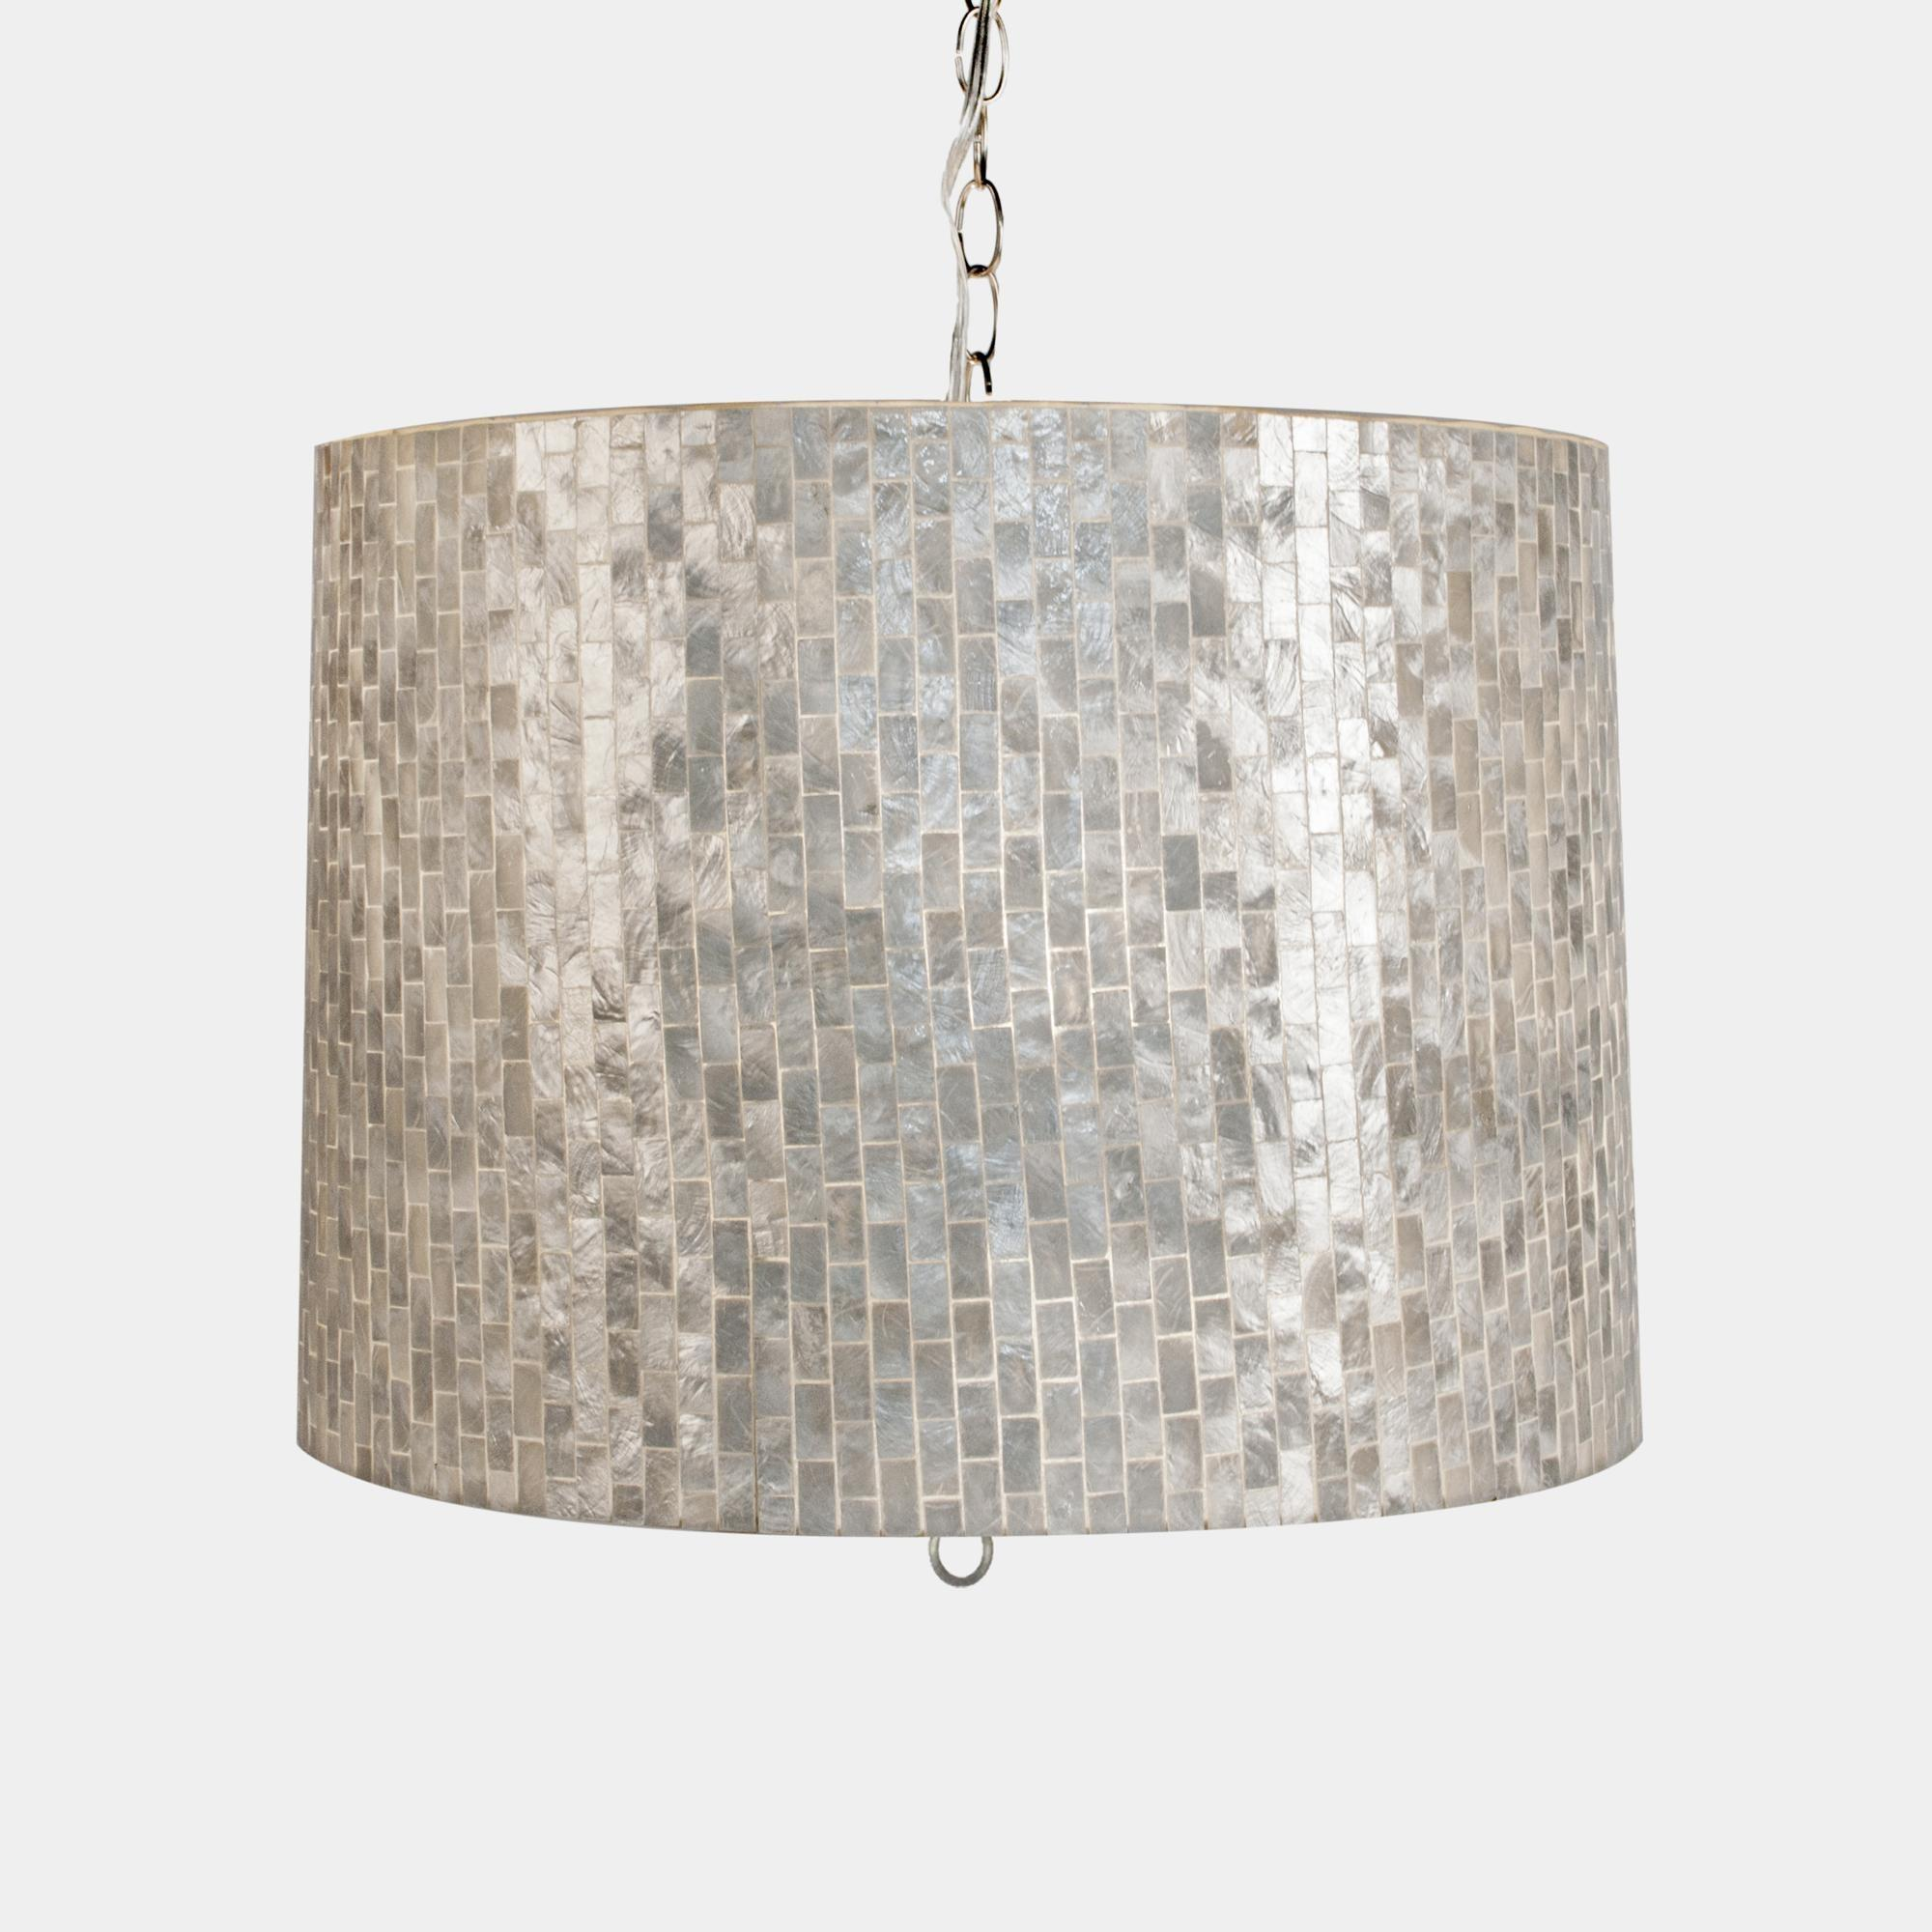 Great Capiz Pendant Light Room Design